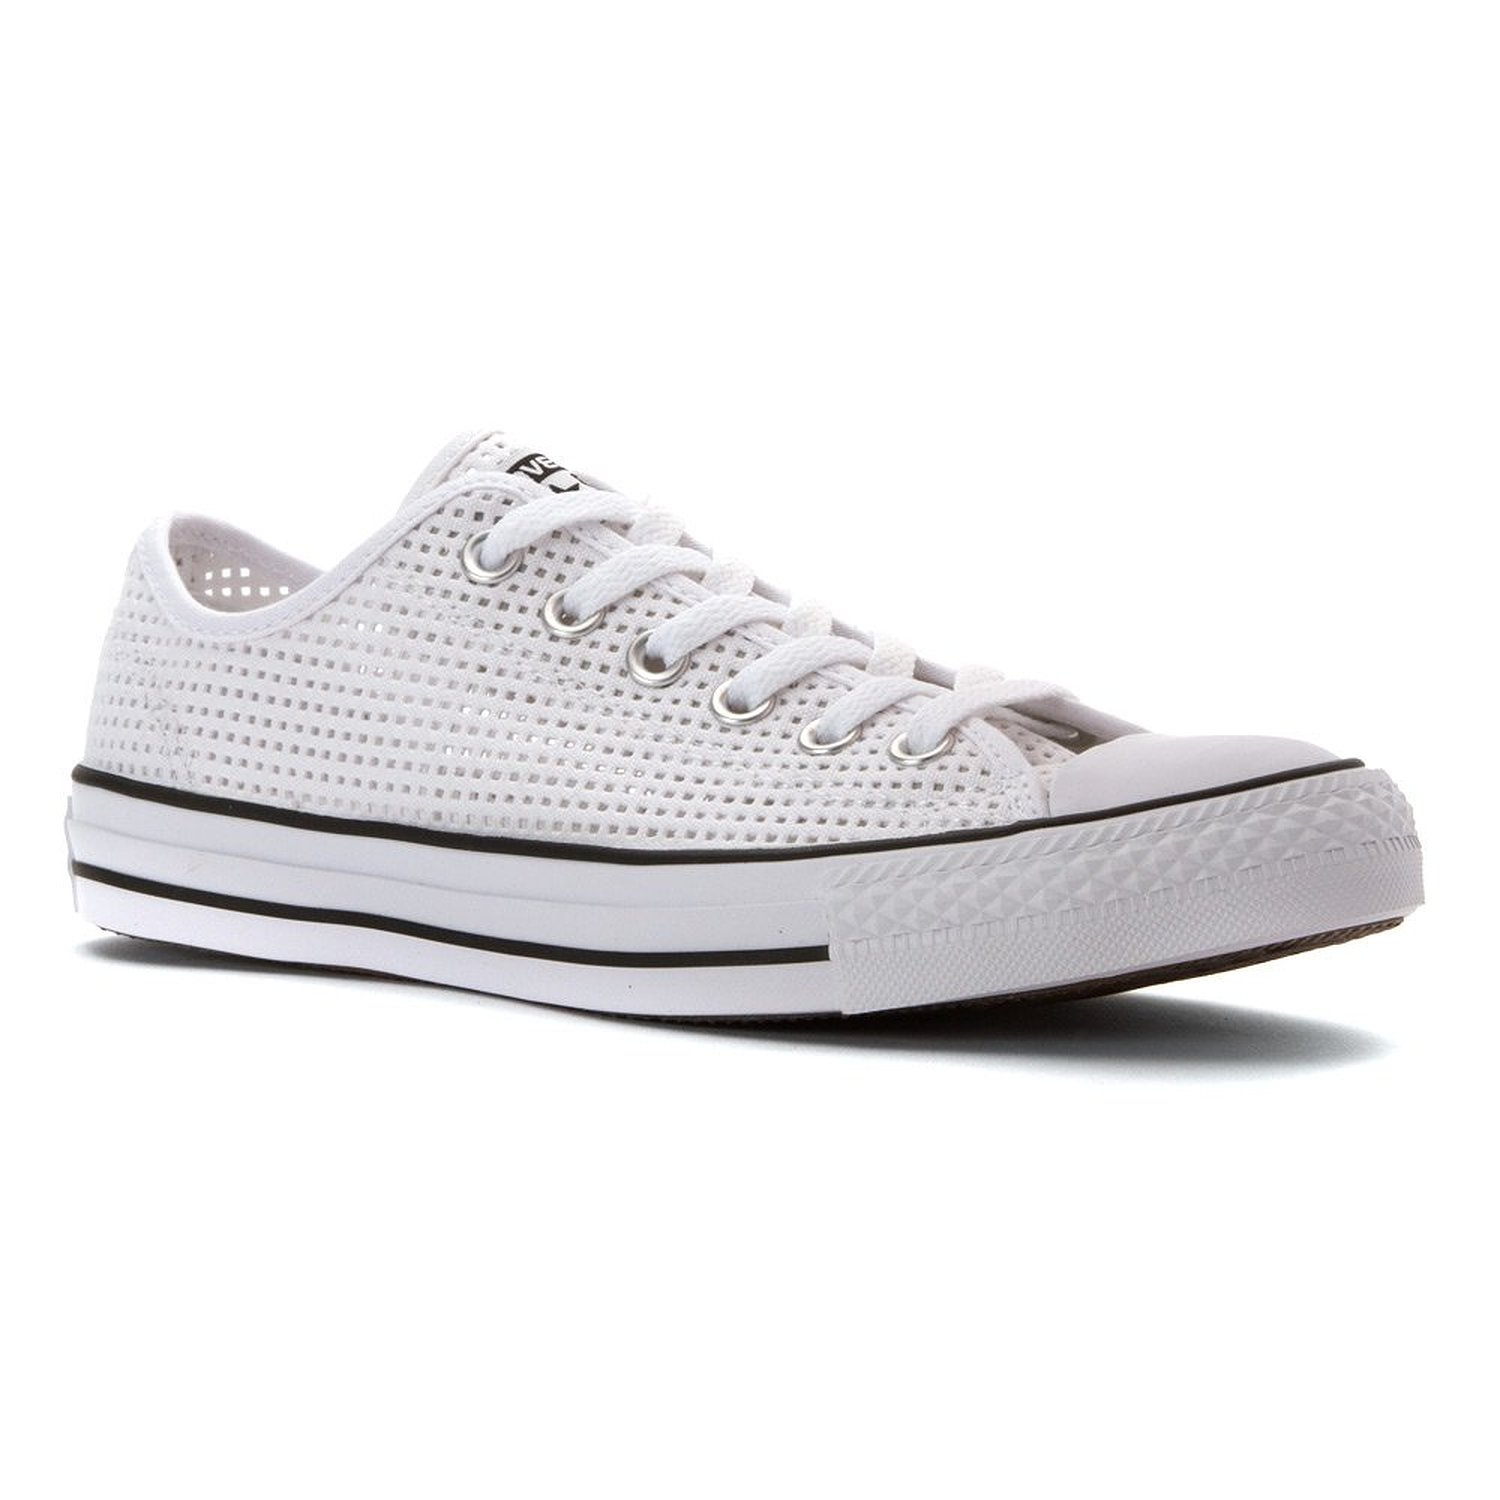 8e5bf4ba2c95 Get Quotations · Converse Women s Chuck Taylor All Star Ox Low Top Sneakers